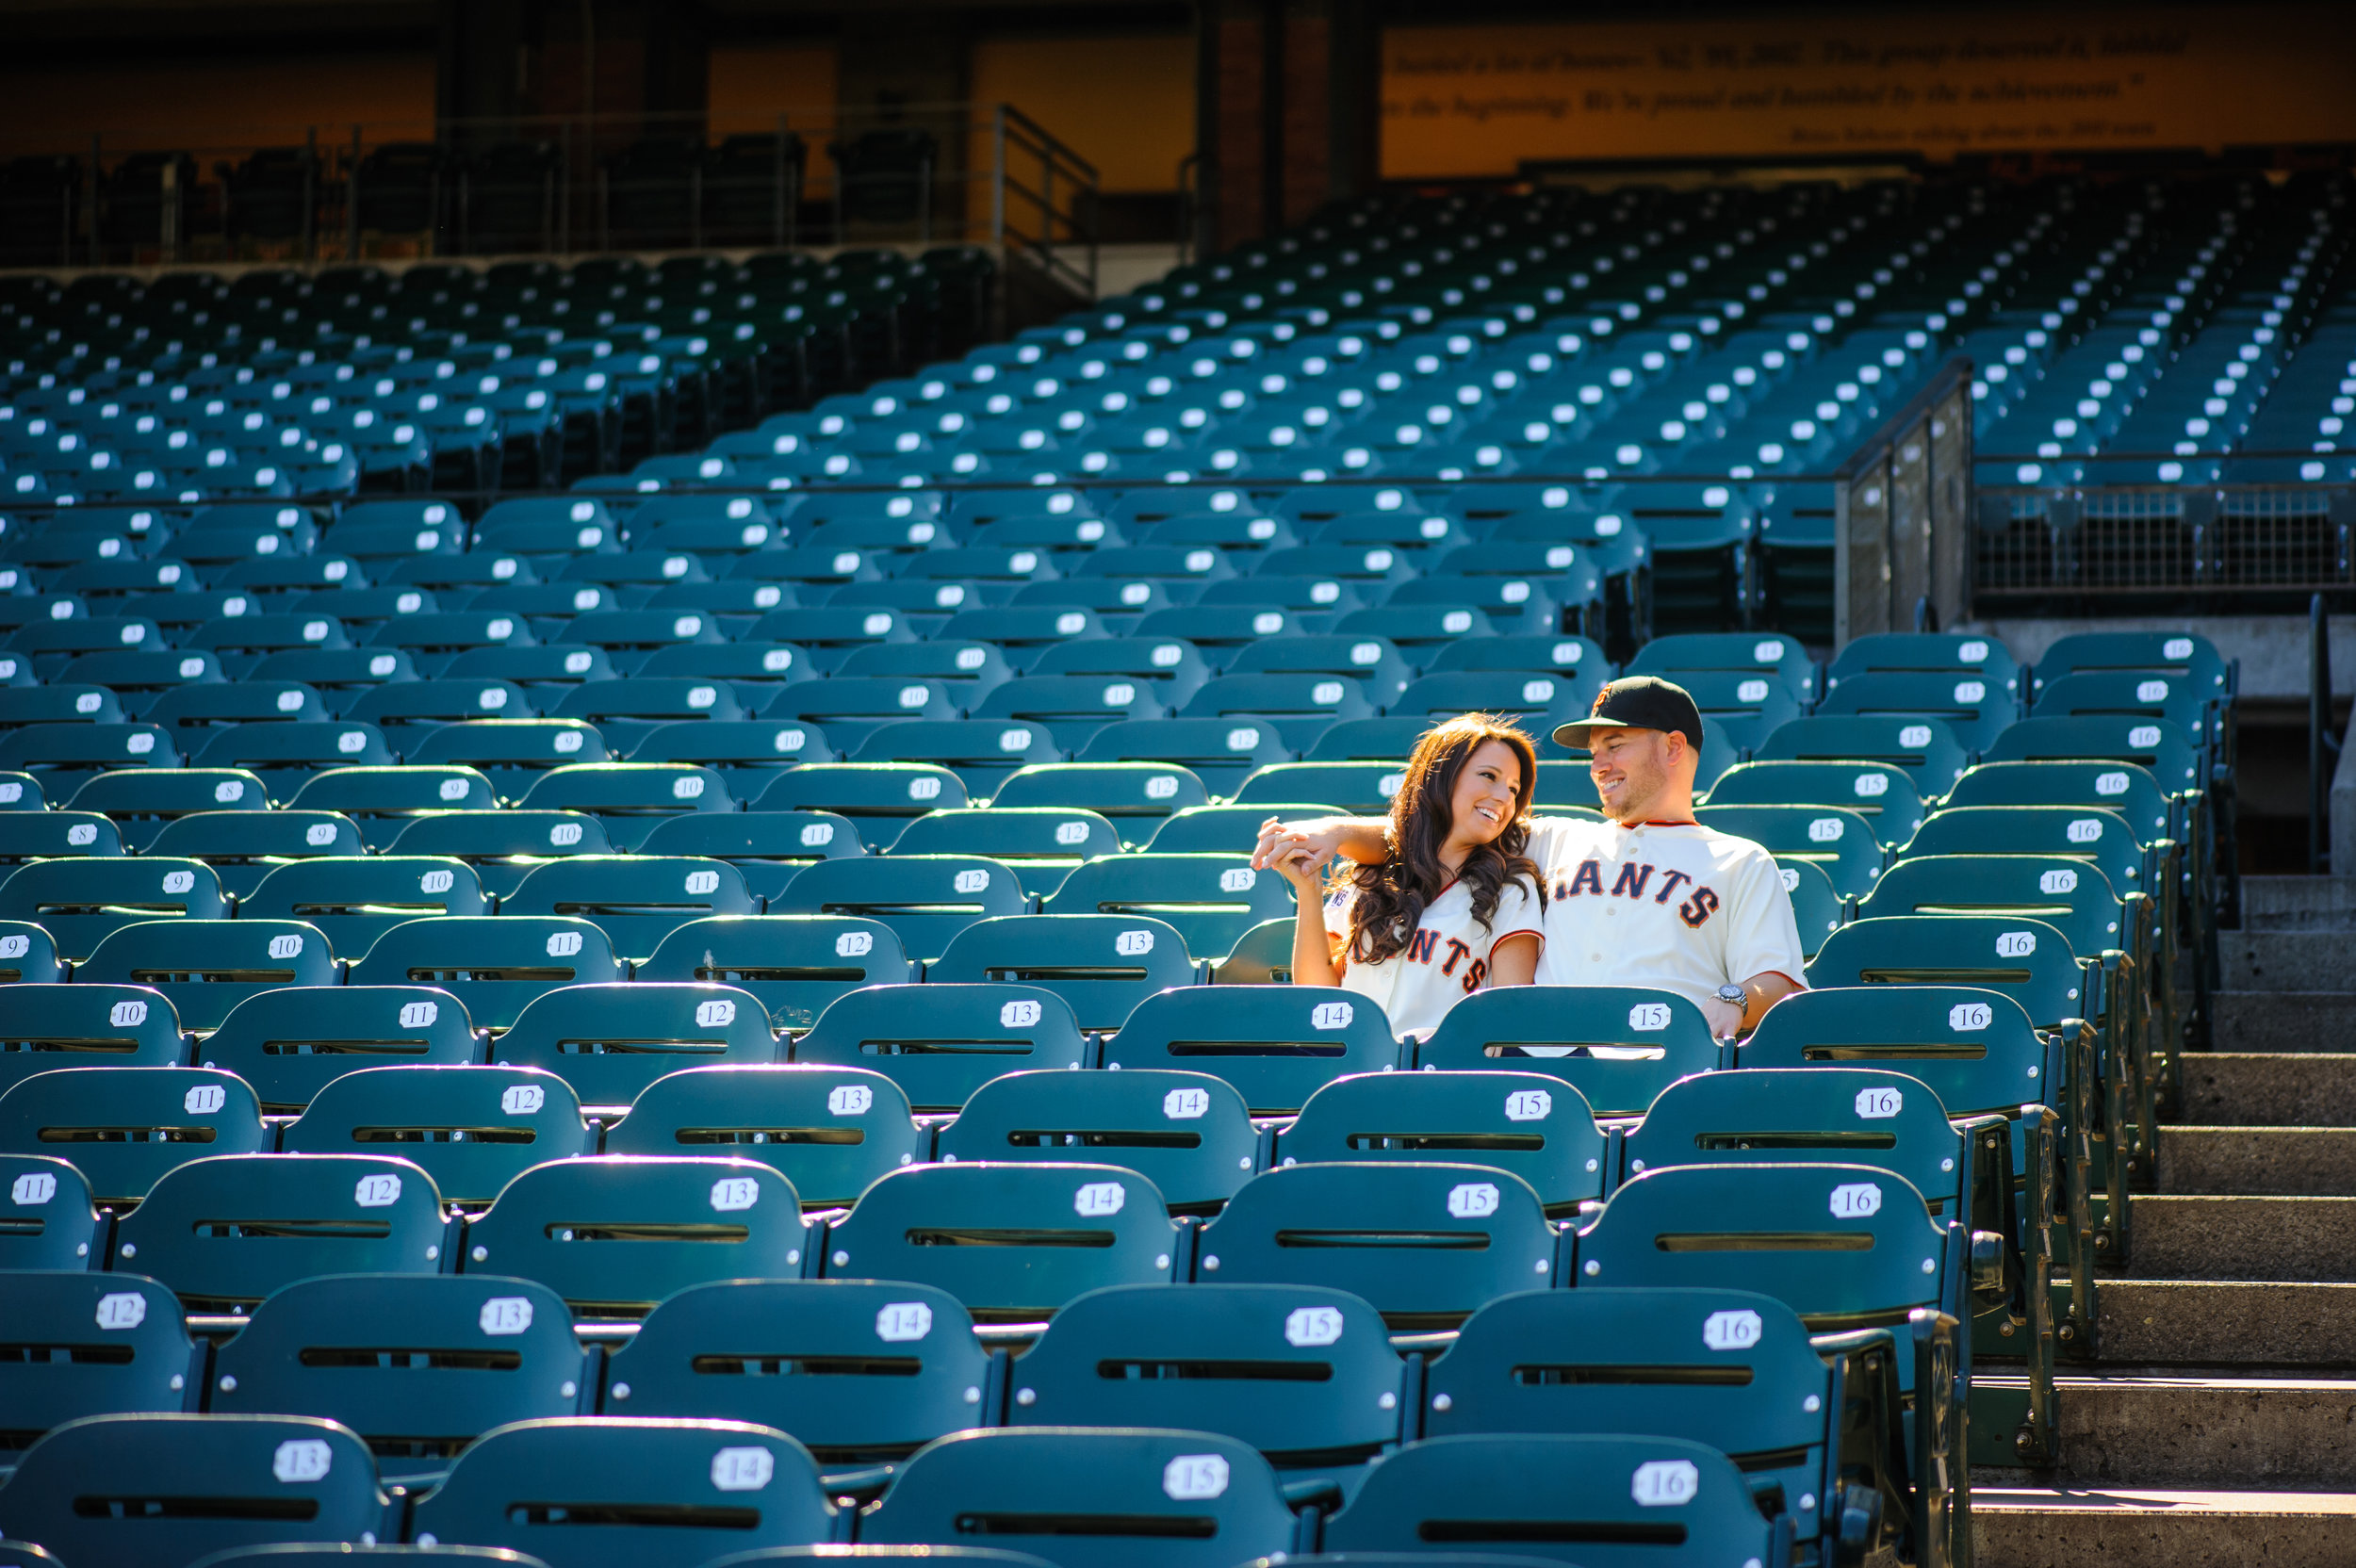 jenny-sean-002-san-francisco-giants-engagement-wedding-photographer-katherine-nicole-photography.JPG